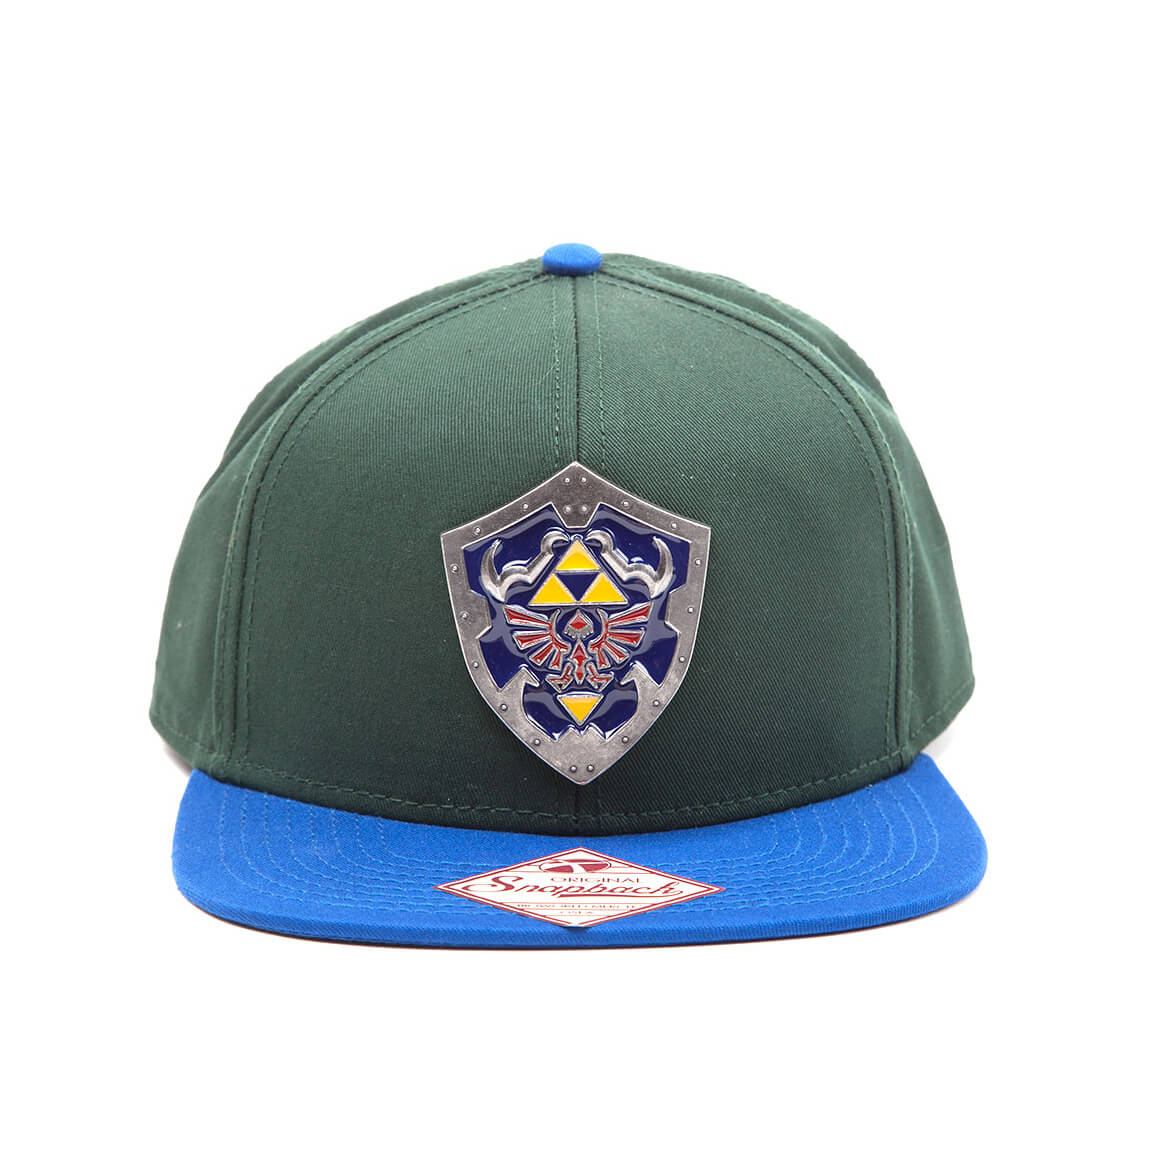 Nintendo The Legend of Zelda Metal Hylian Shield Snapback Cap - Green/Blue